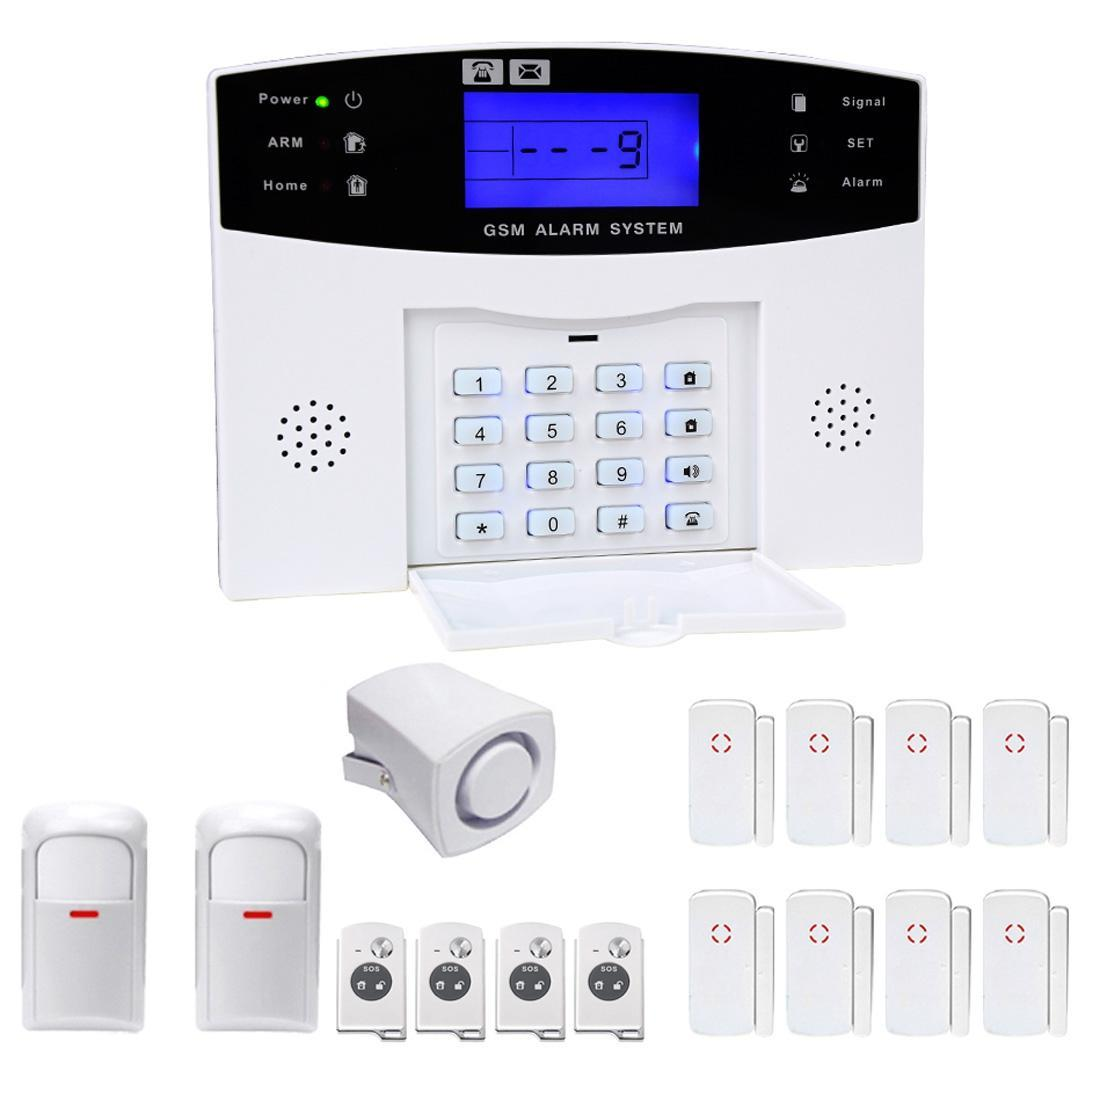 YA-500-GSM-24 16 in 1 Kit Wireless 315/433MHz GSM SMS Security Home House Burglar Alarm System with LCD Screen